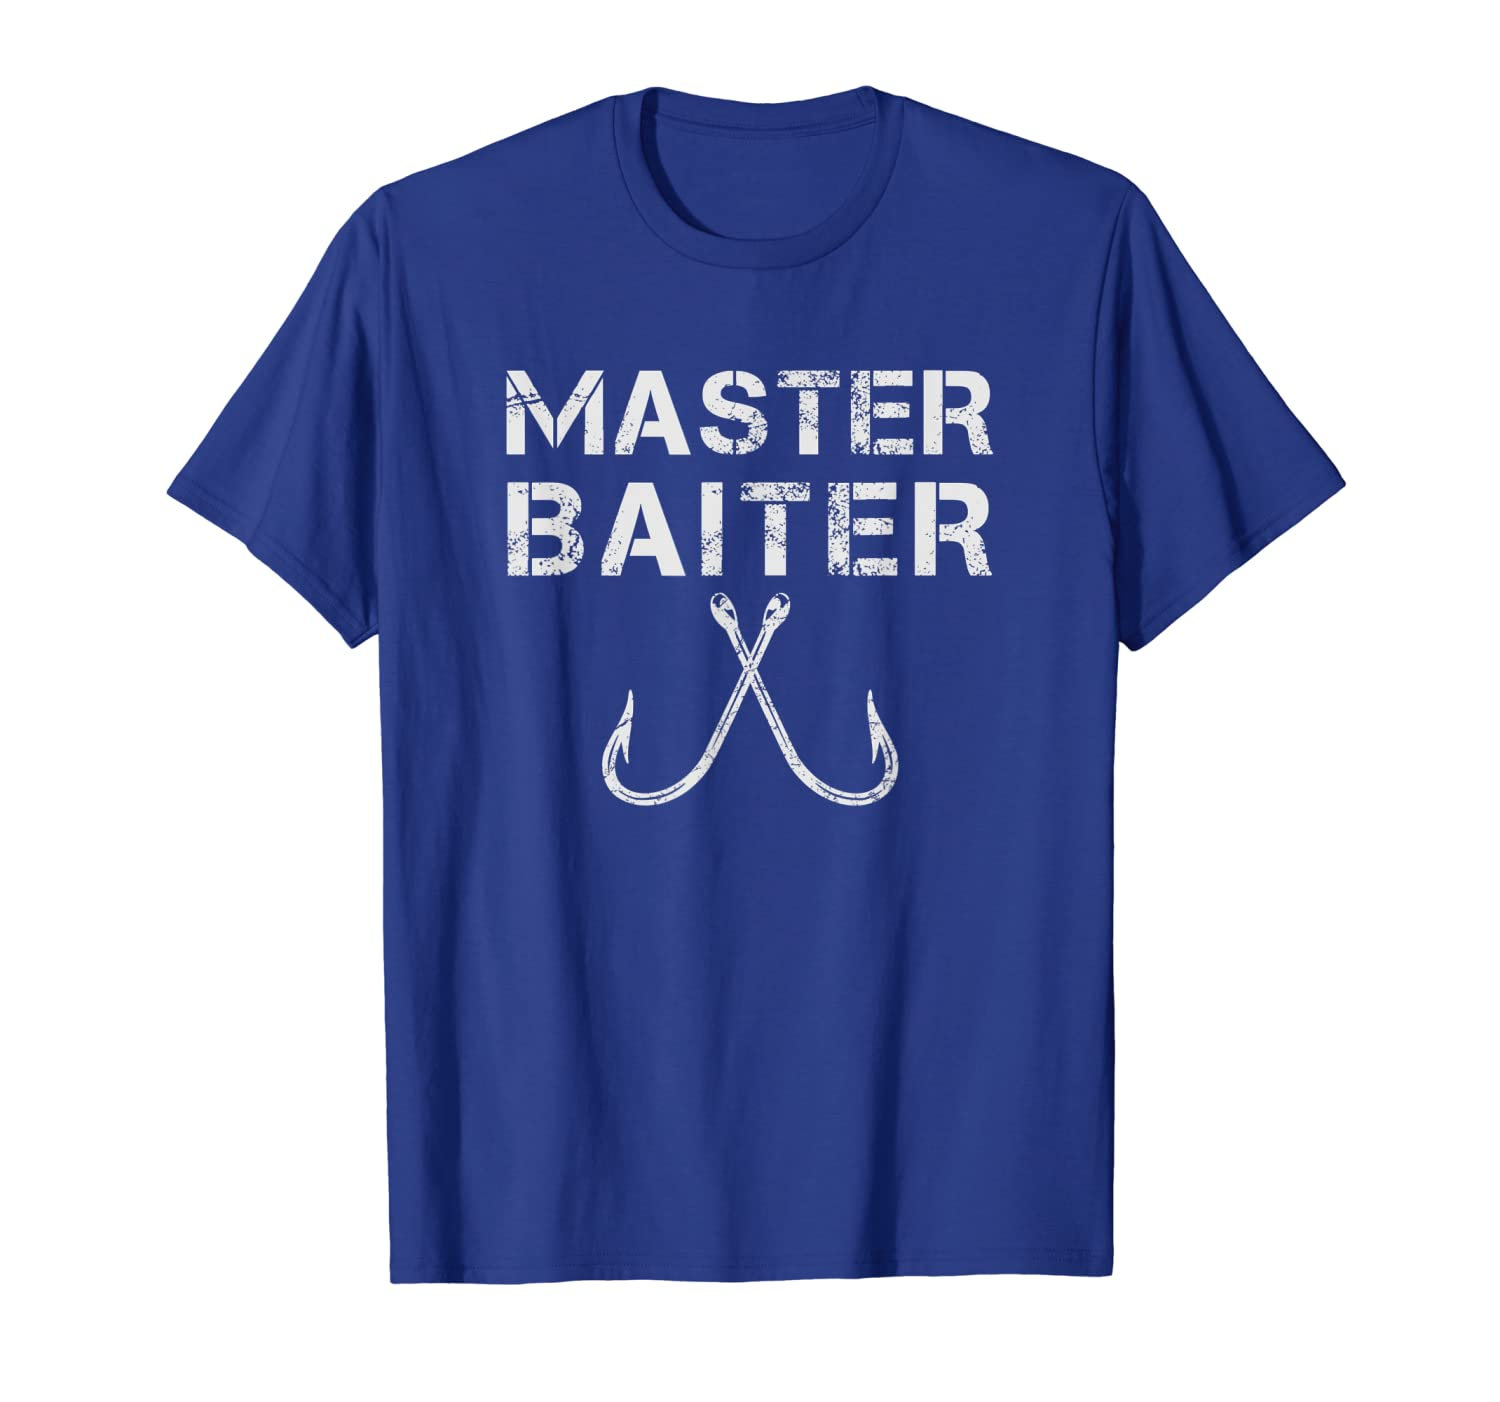 Funny Fishermen Fishing Gift For Men Fisher Master Baiter T-Shirt Unisex Tshirt